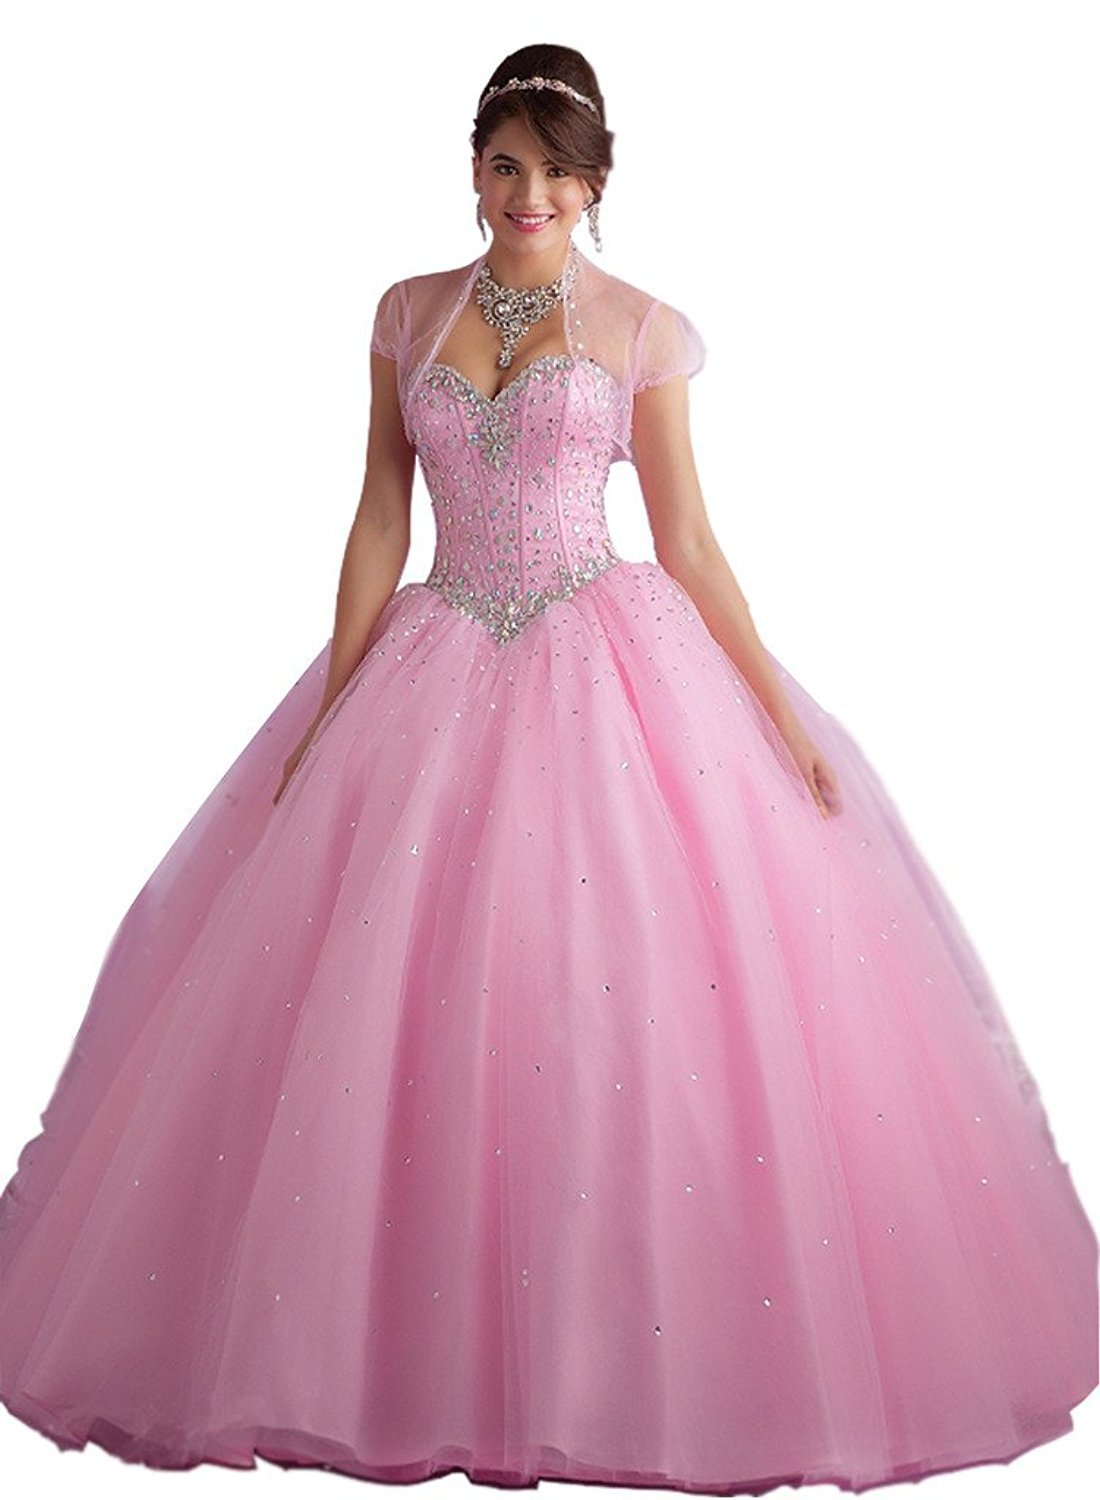 Beilite Women's Sweetheart Prom Long Dresses Quinceanera Gown with Crystal Sequins Pink 8